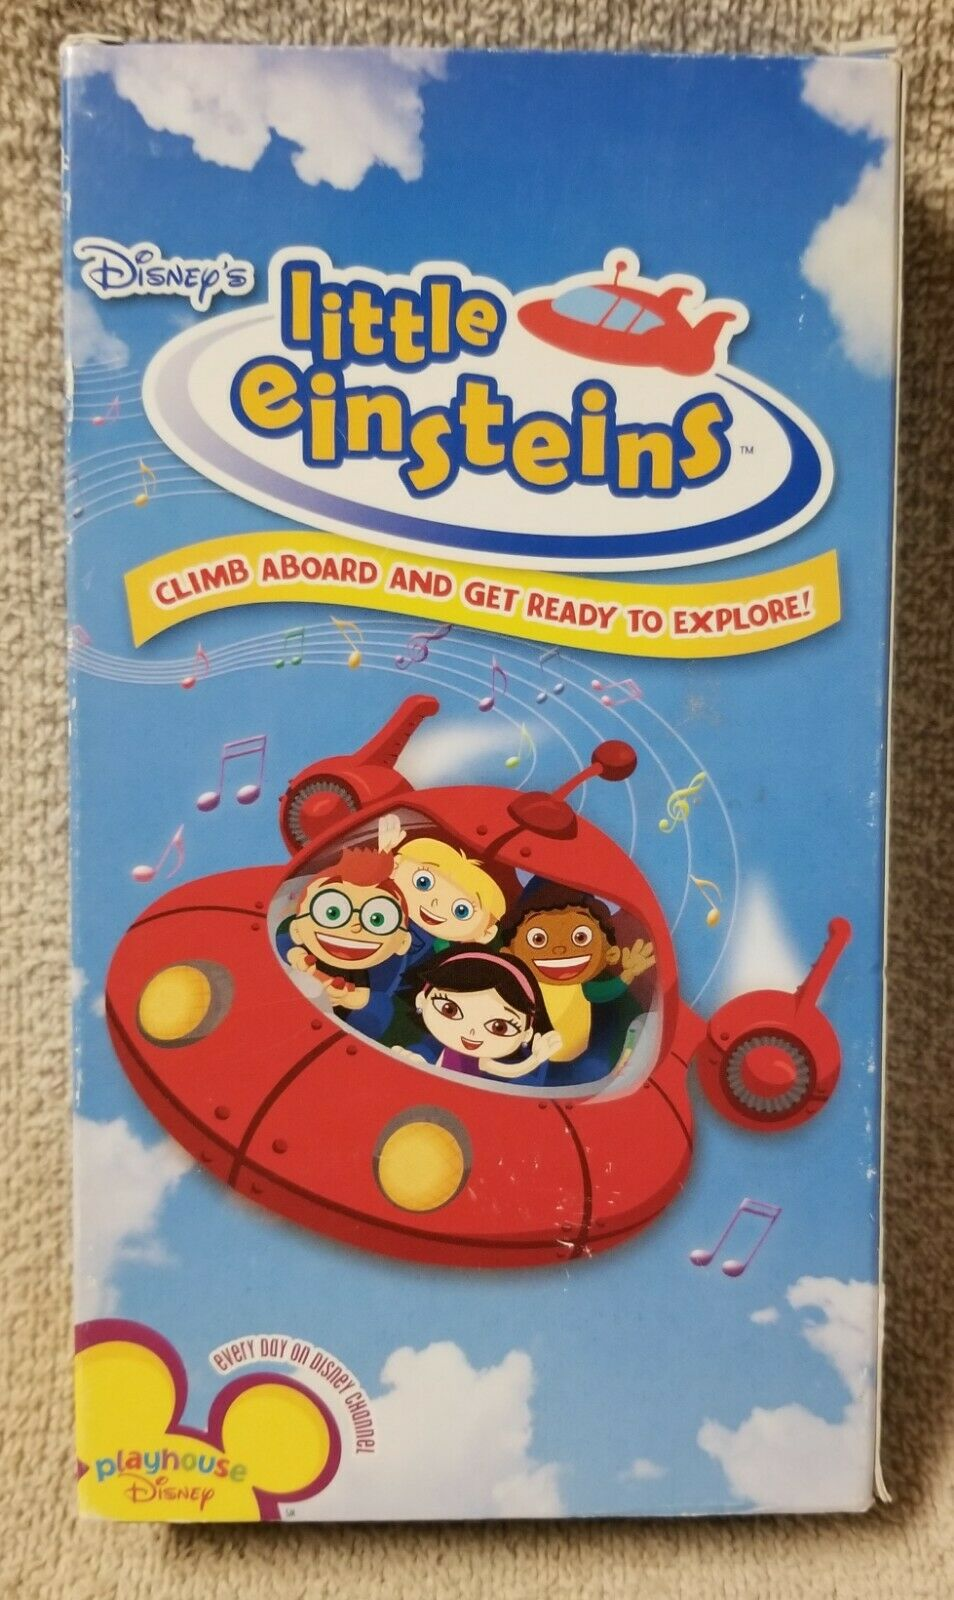 Little Einsteins: Climb Aboard and Get Ready to Explore (2005 VHS)